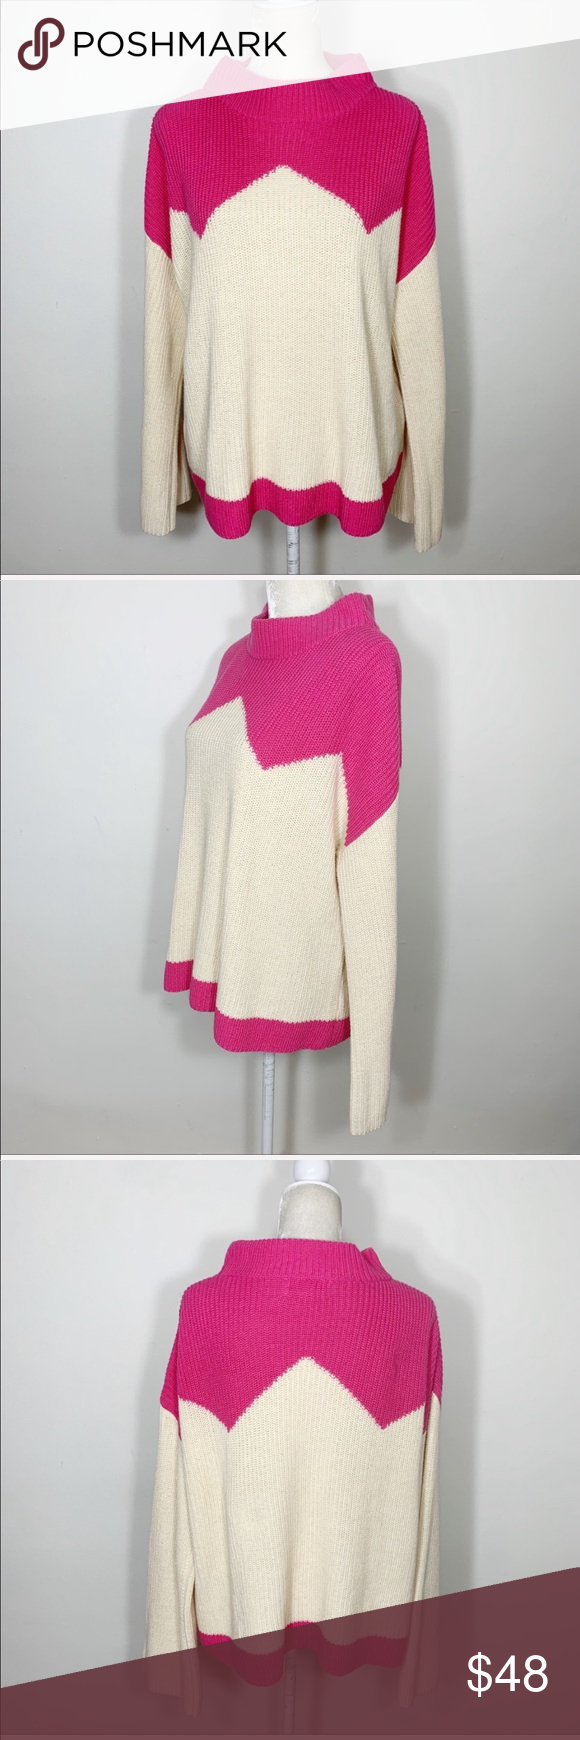 J Crew X The Reeds Pink Zig Zag Knit Sweater Knitted Sweaters Sweaters For Women Sweaters